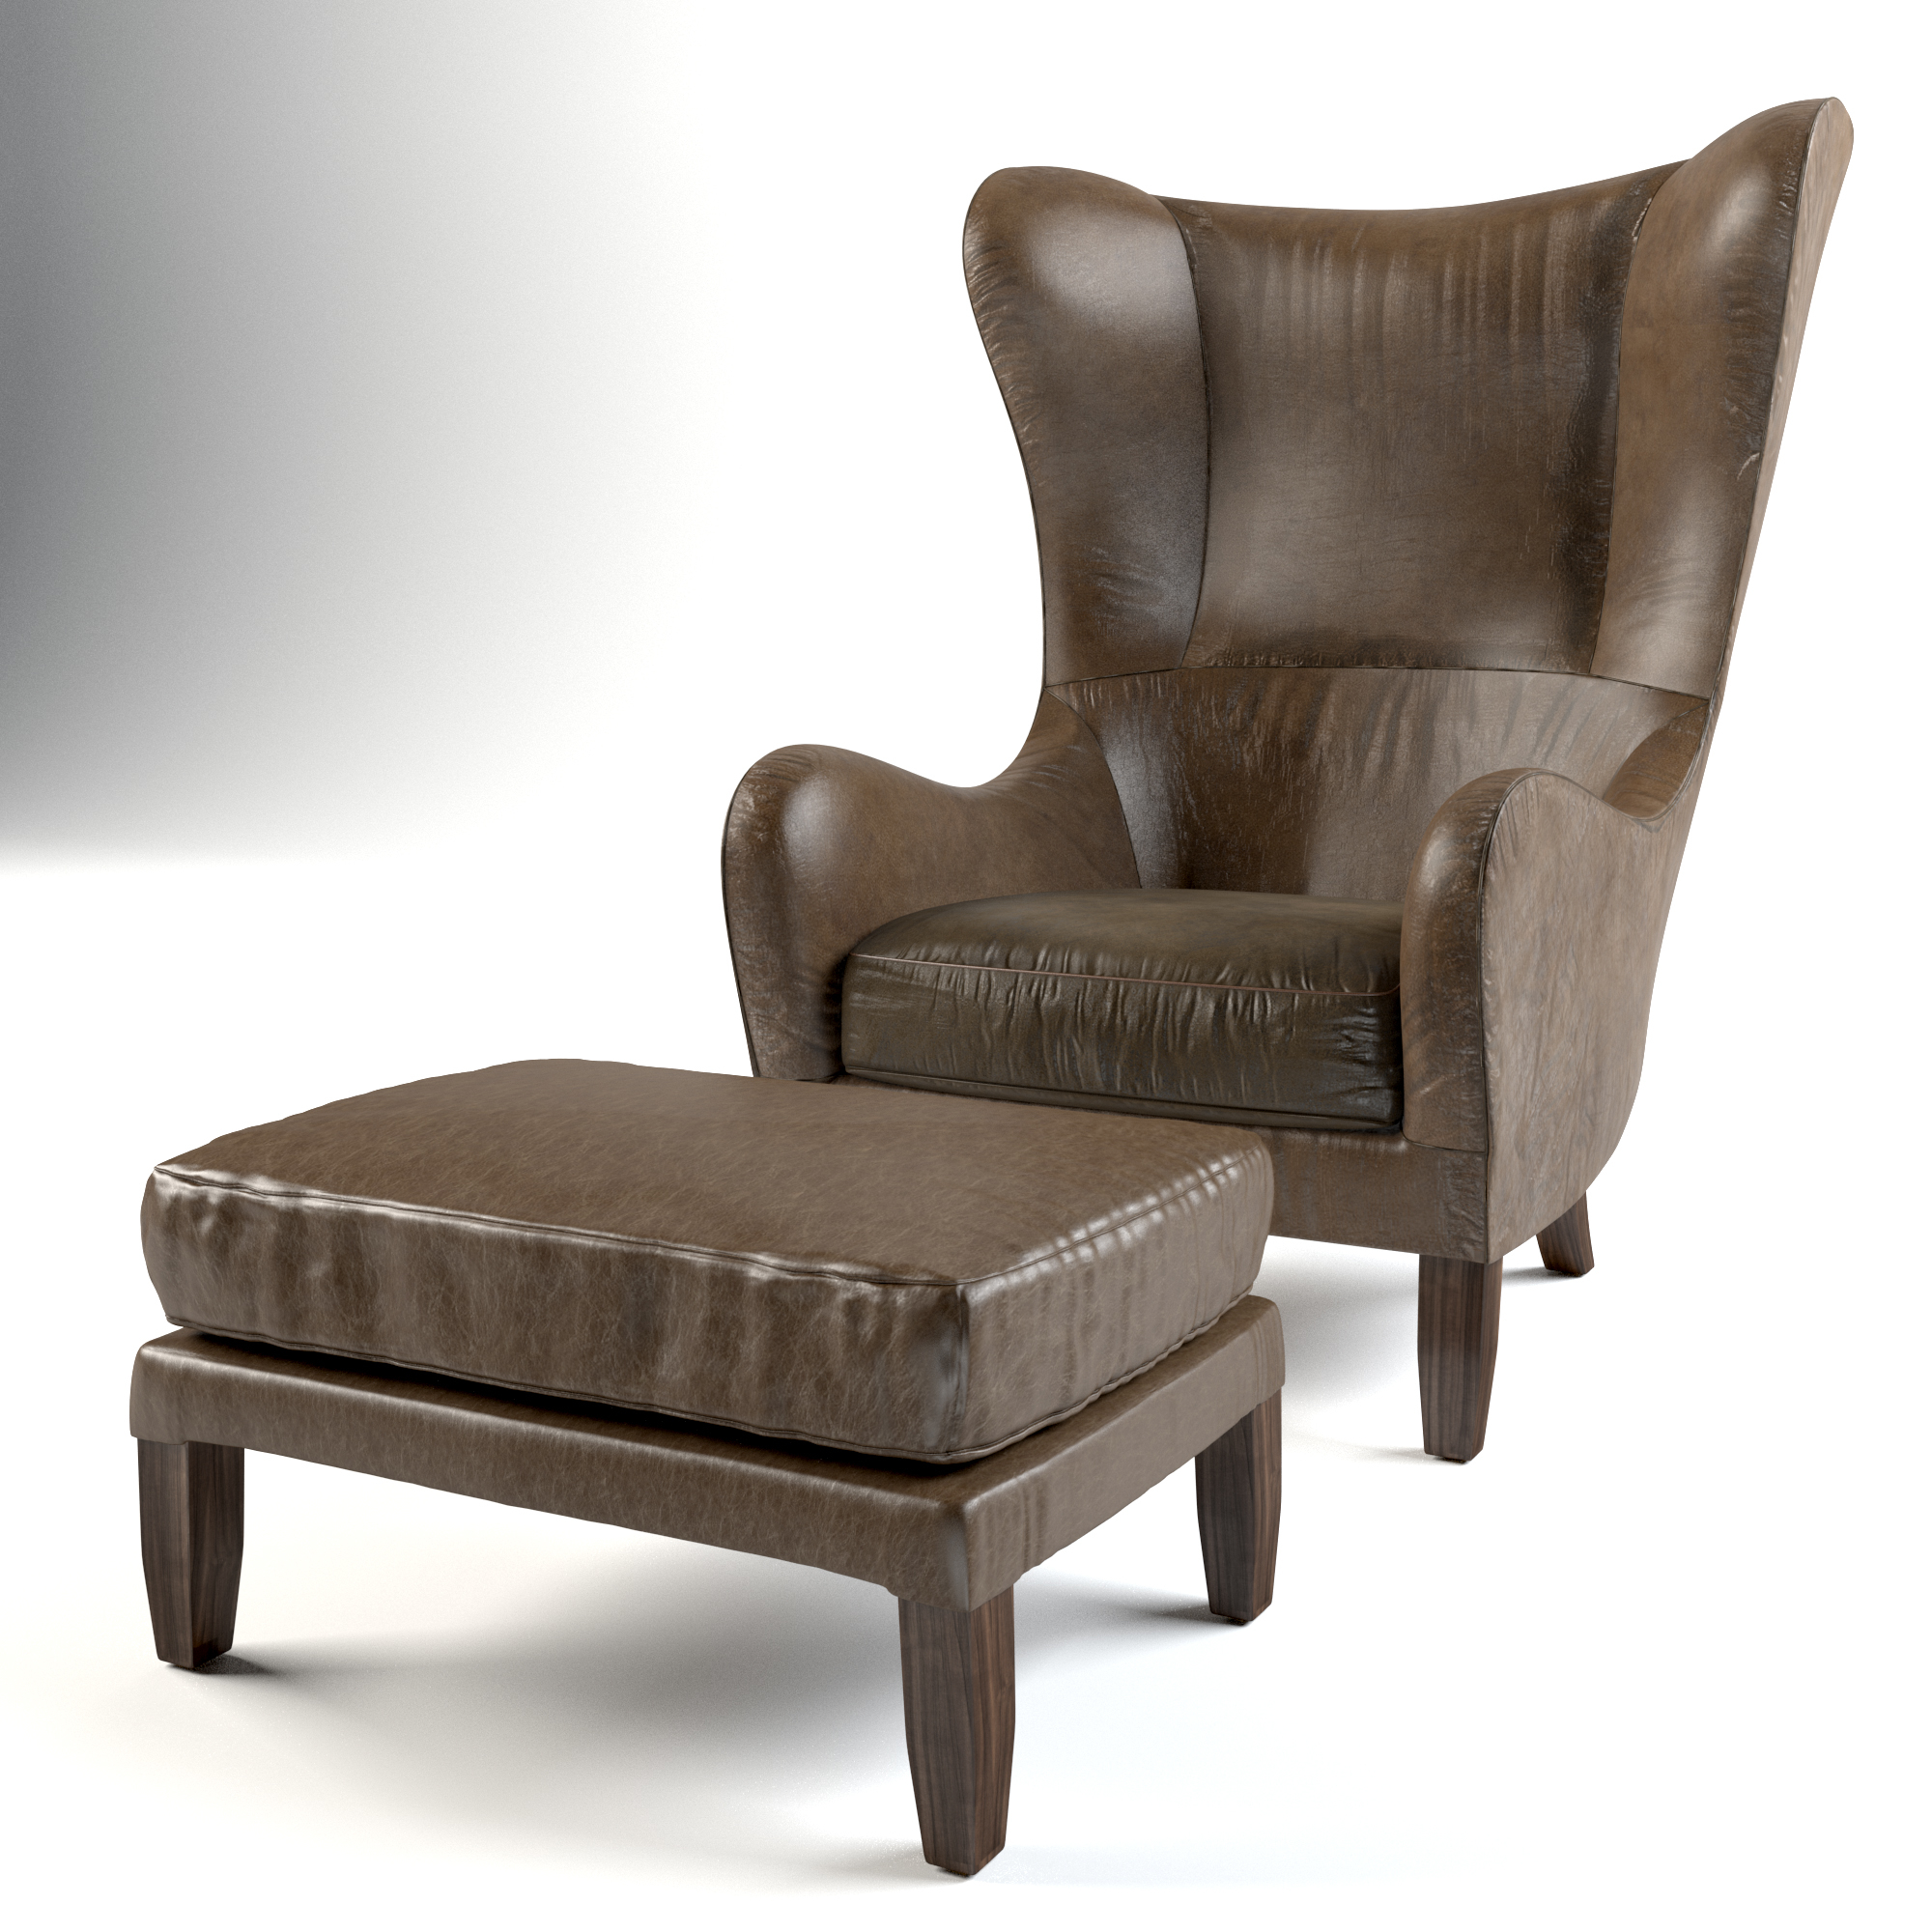 Super Garbo Leather Wingback Chair And Luxe Leather Ottoman Machost Co Dining Chair Design Ideas Machostcouk